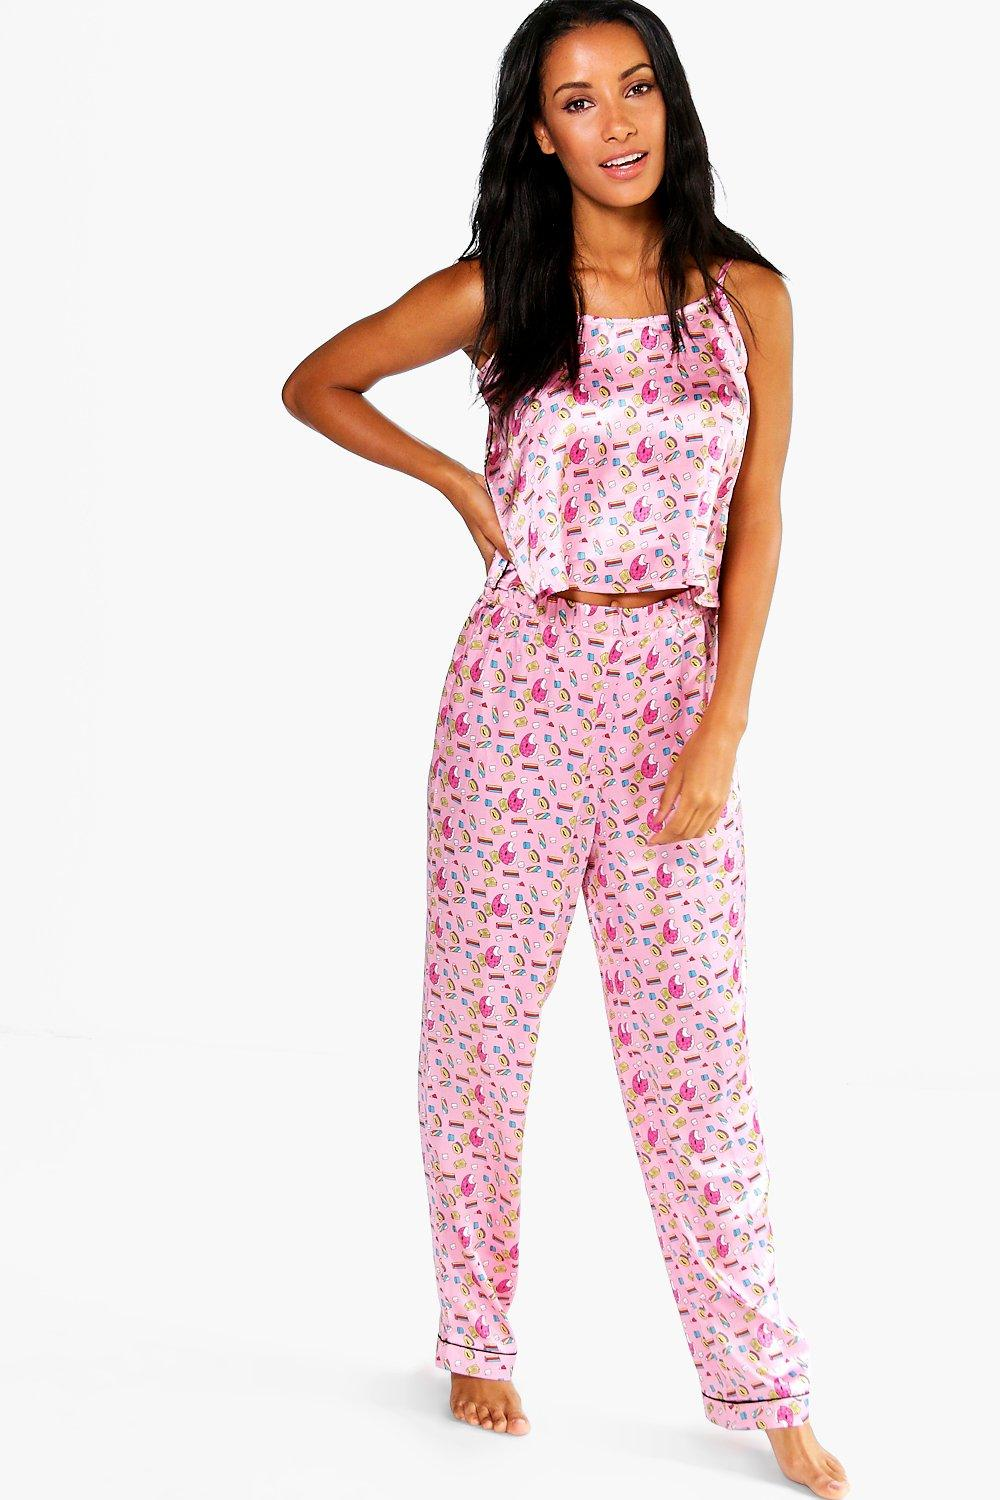 Lola Kitsch Print Satin Vest + Trouser Set